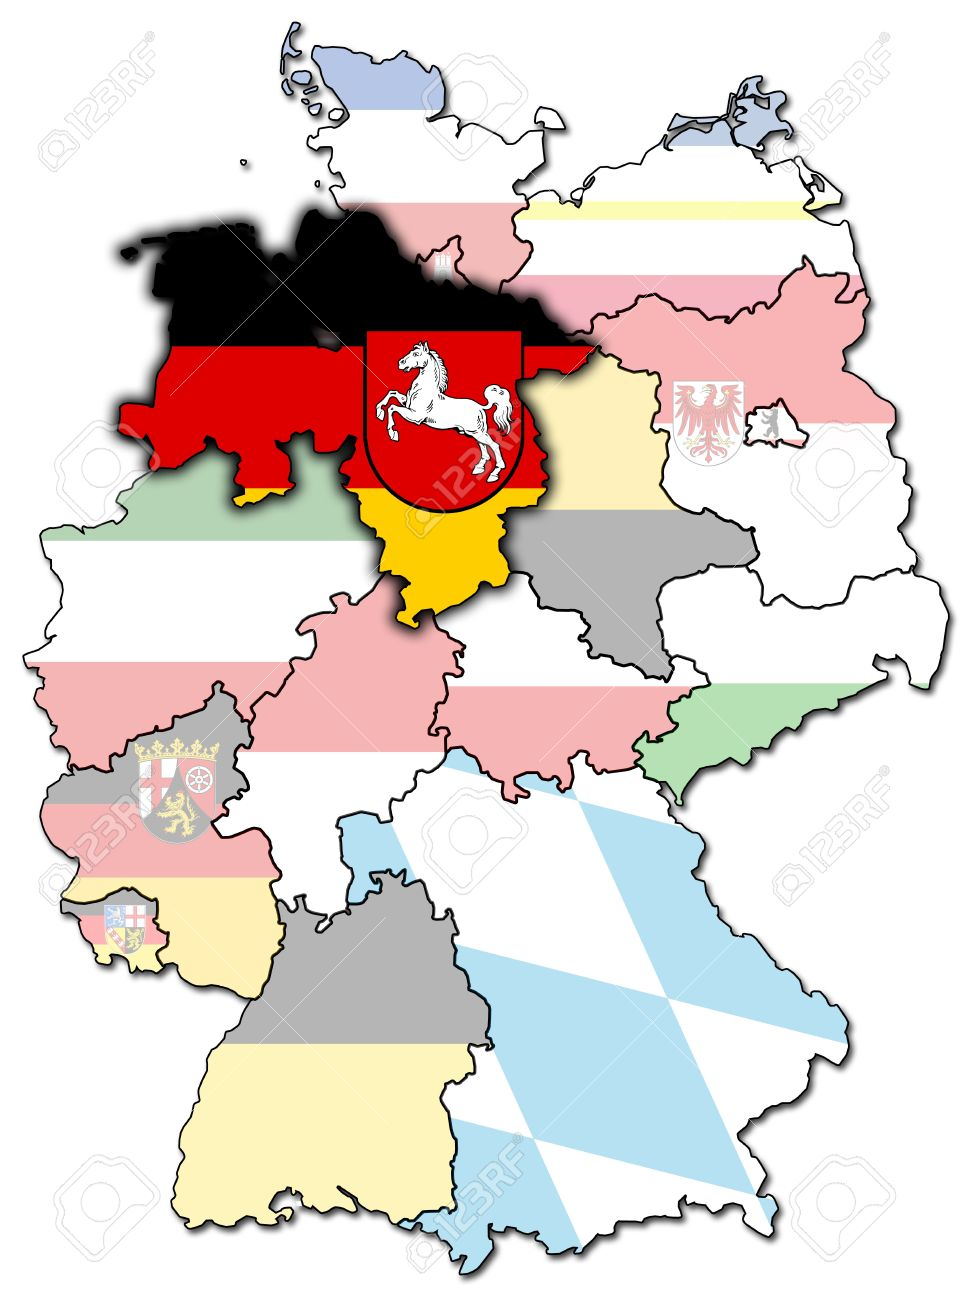 Lower Saxony On Old Administration Map Of German Provinces Stock